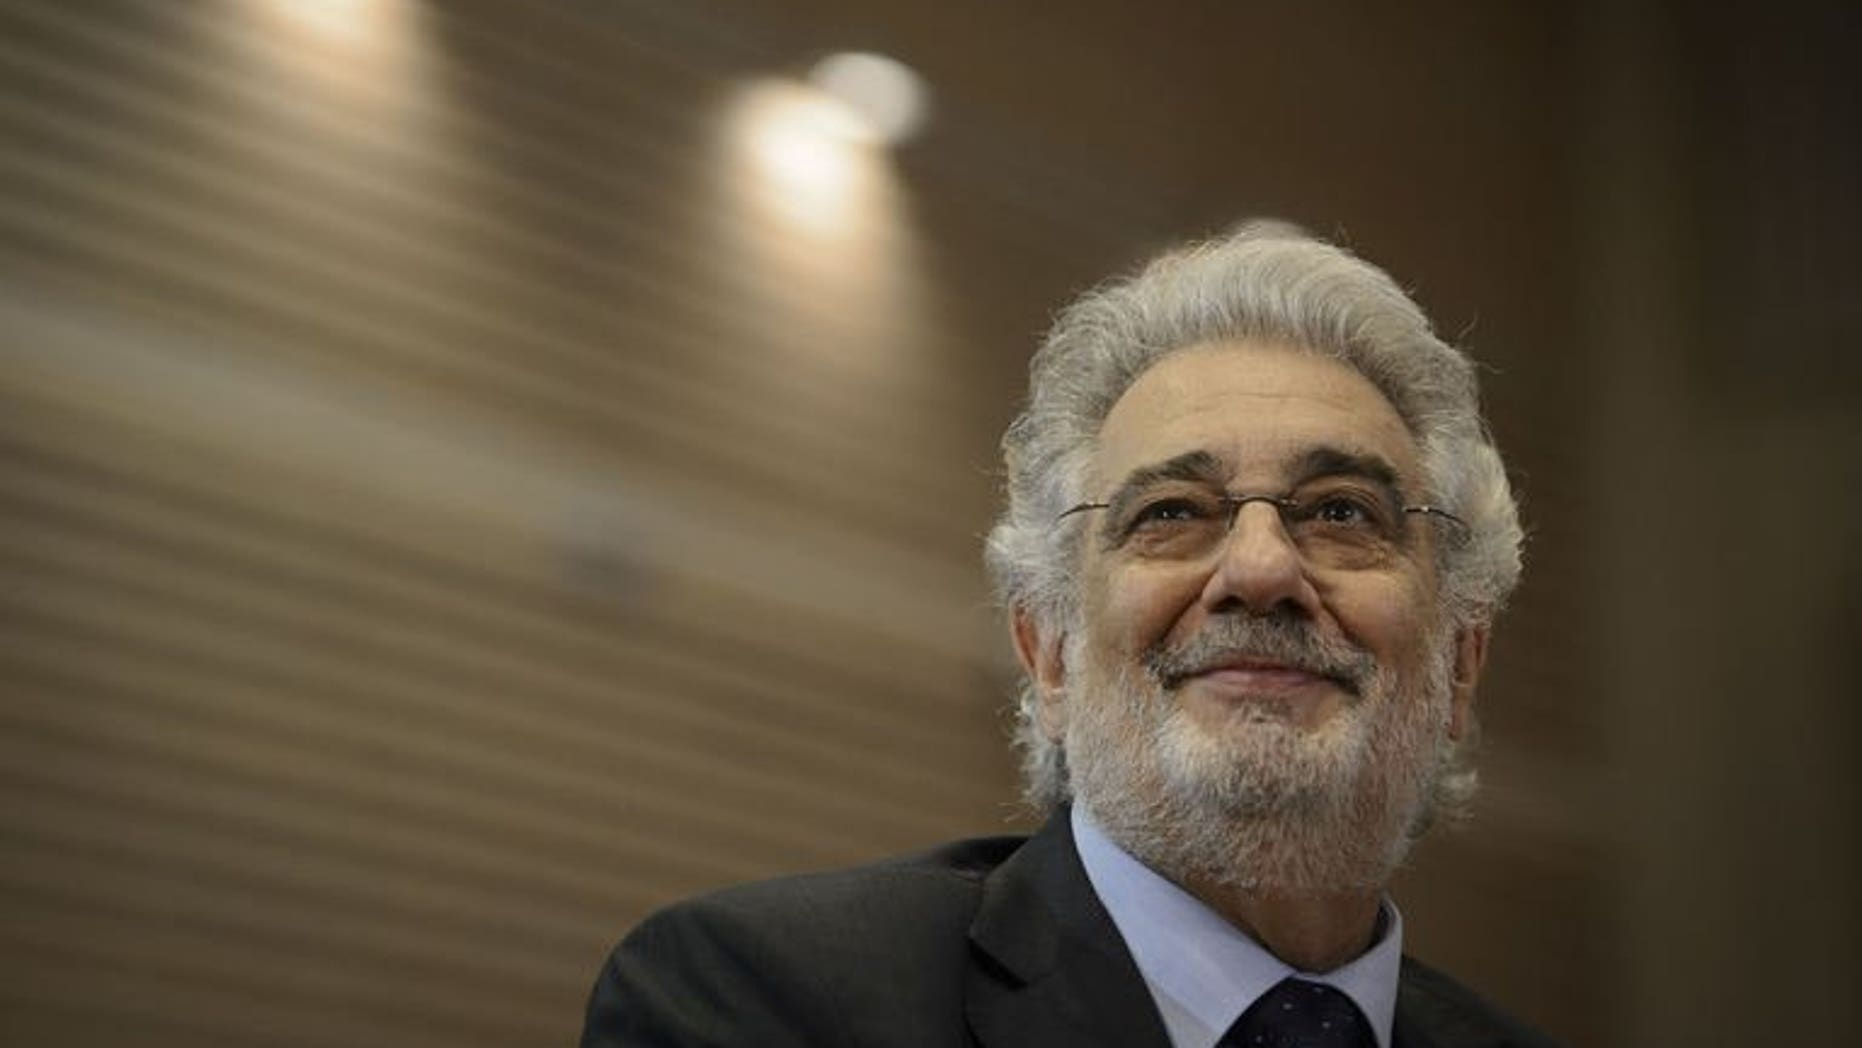 """Spanish tenor Placido Domingo gives a press conference at the Royal Theater in Madrid on July 14, 2013, before attending a dress rehearsal of Daniel Catan's """"Il Postino"""". Domingo said on Sunday that he was feeling well after treatment for a blockage in his lung, as his doctor said the tenor would make a full recovery."""